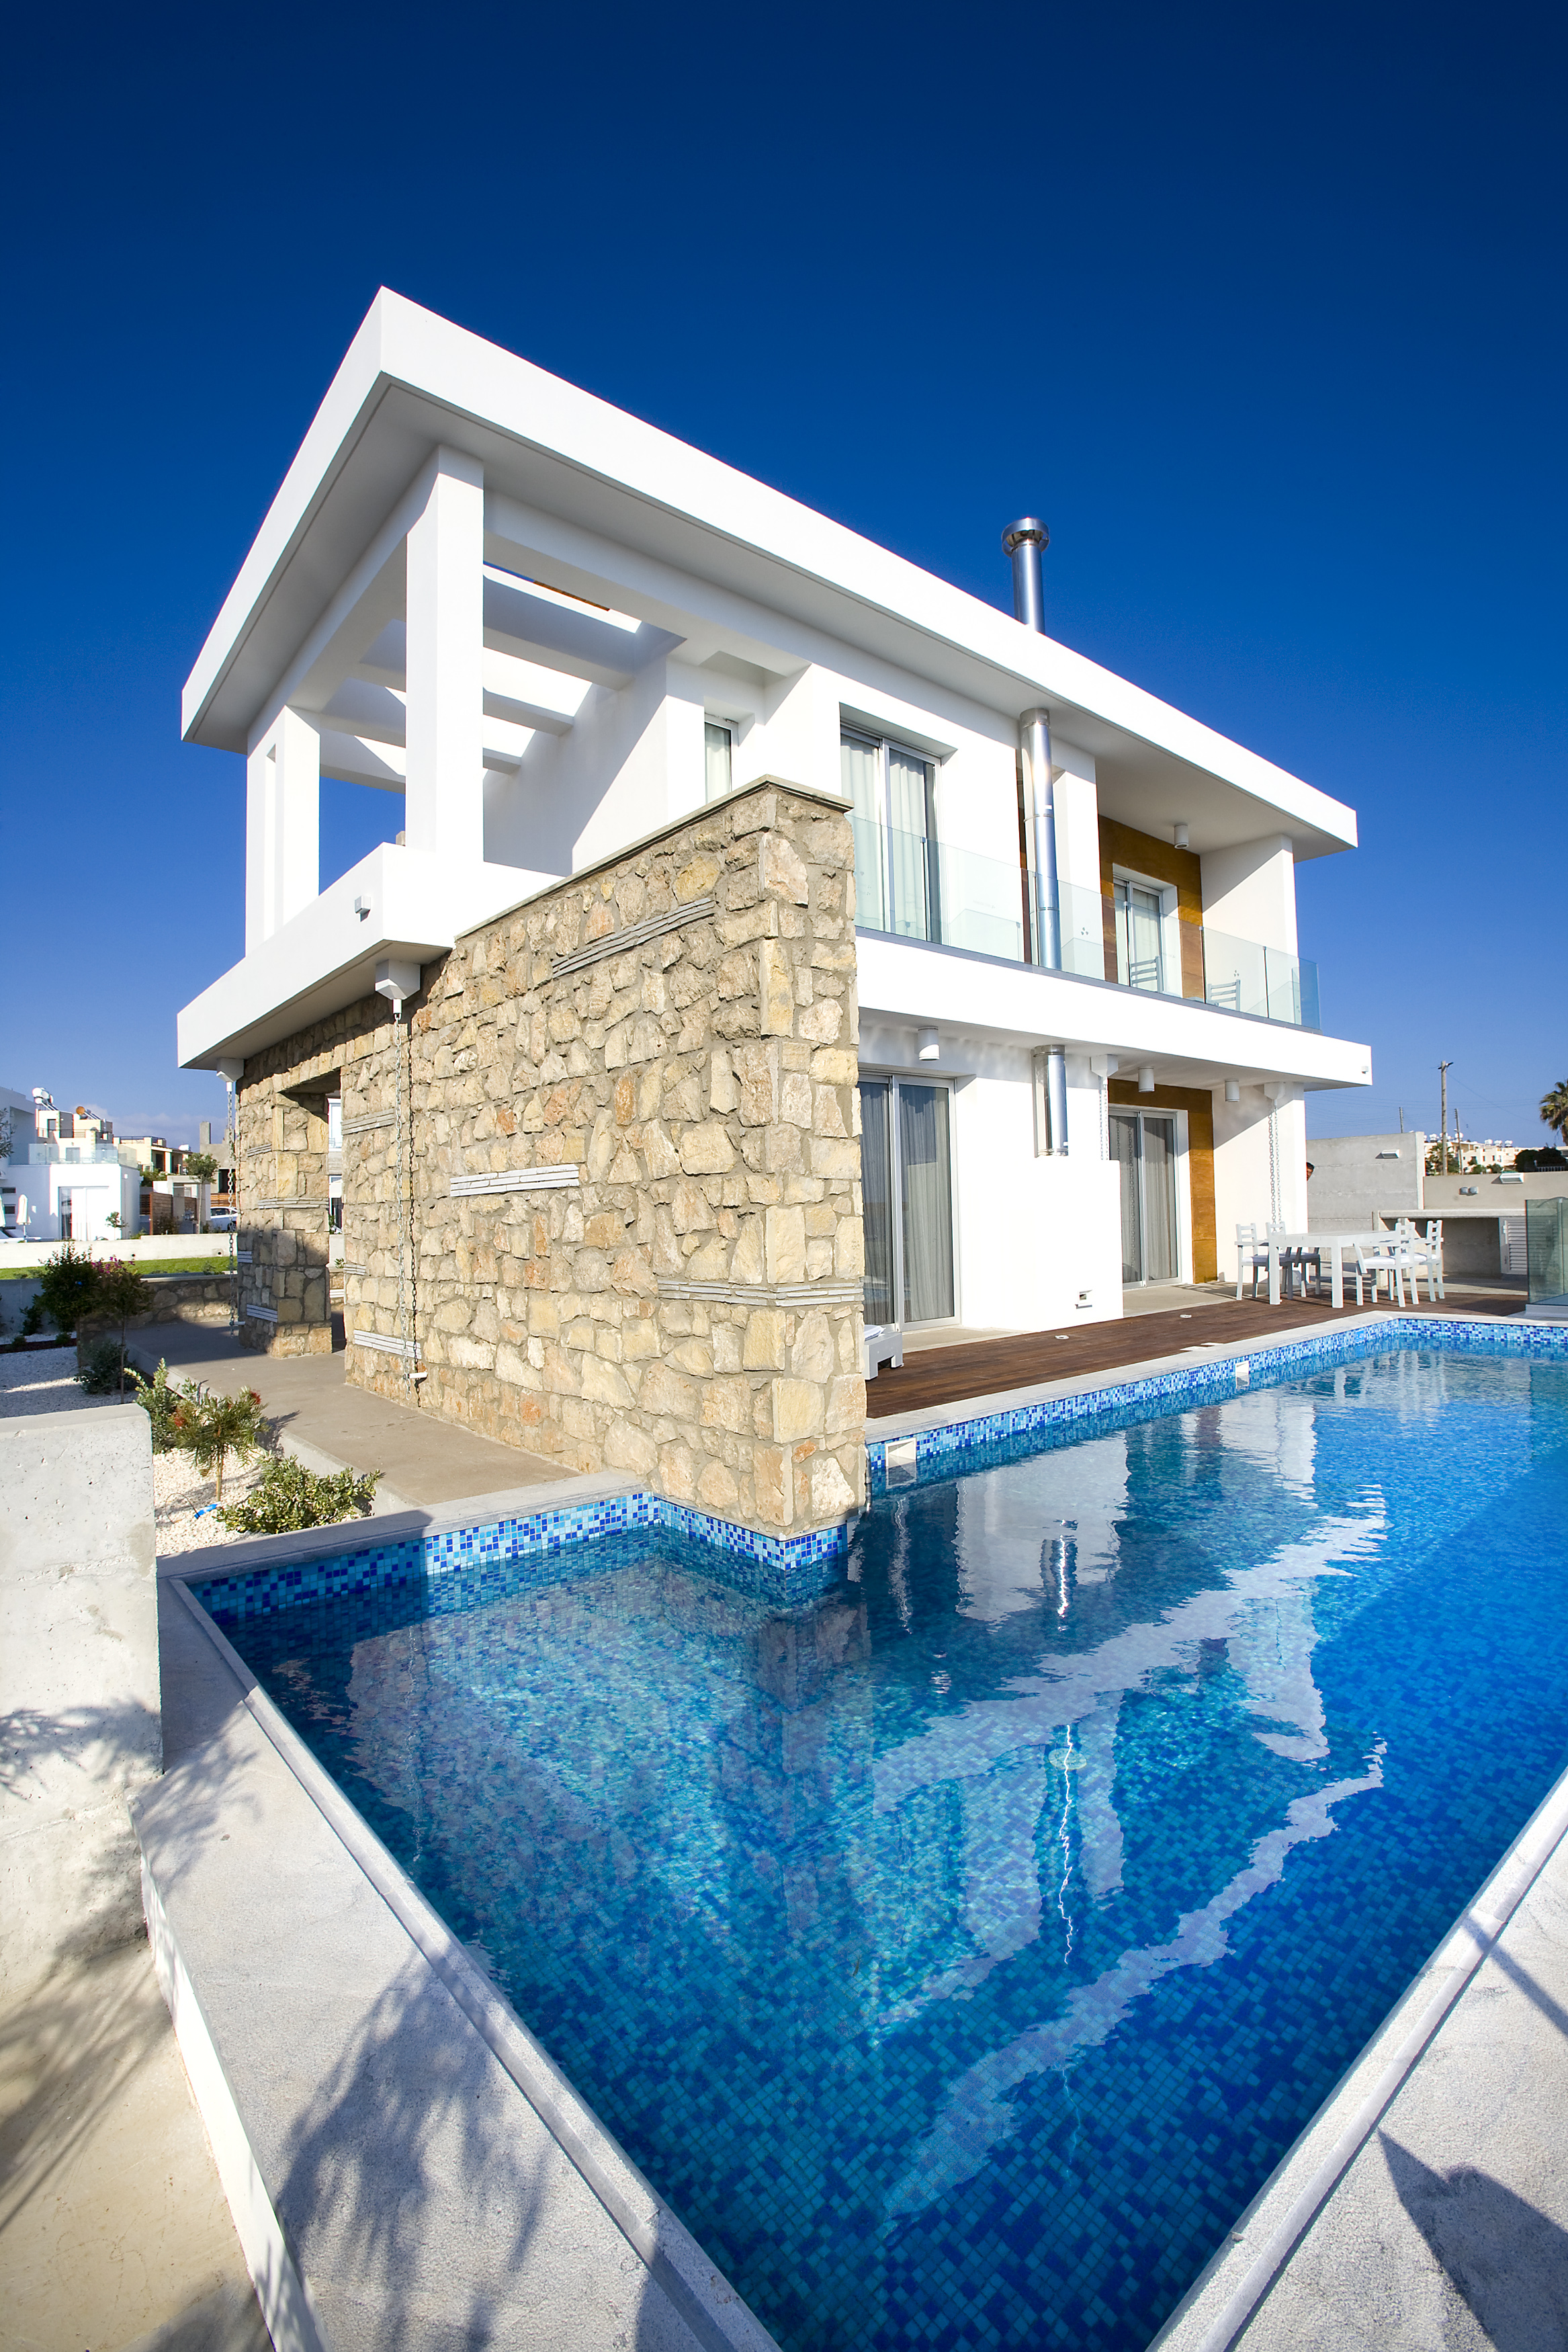 Cyan three bedroom luxury villa on the beach Cyprus